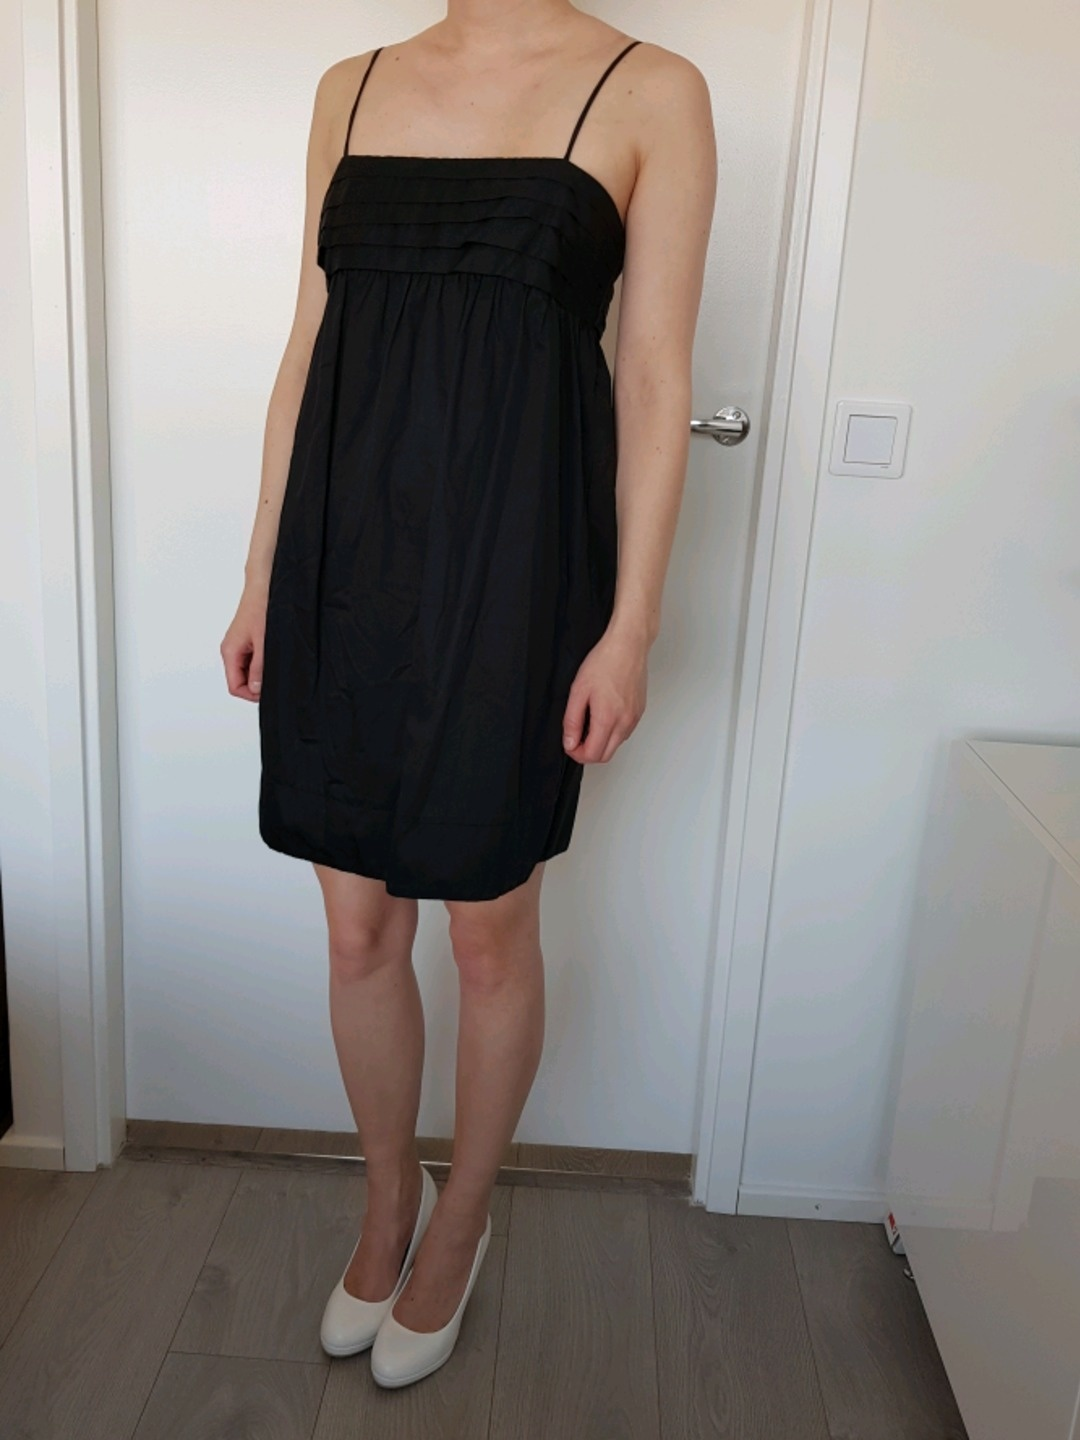 Women's dresses - FRENCH CONNECTION photo 1